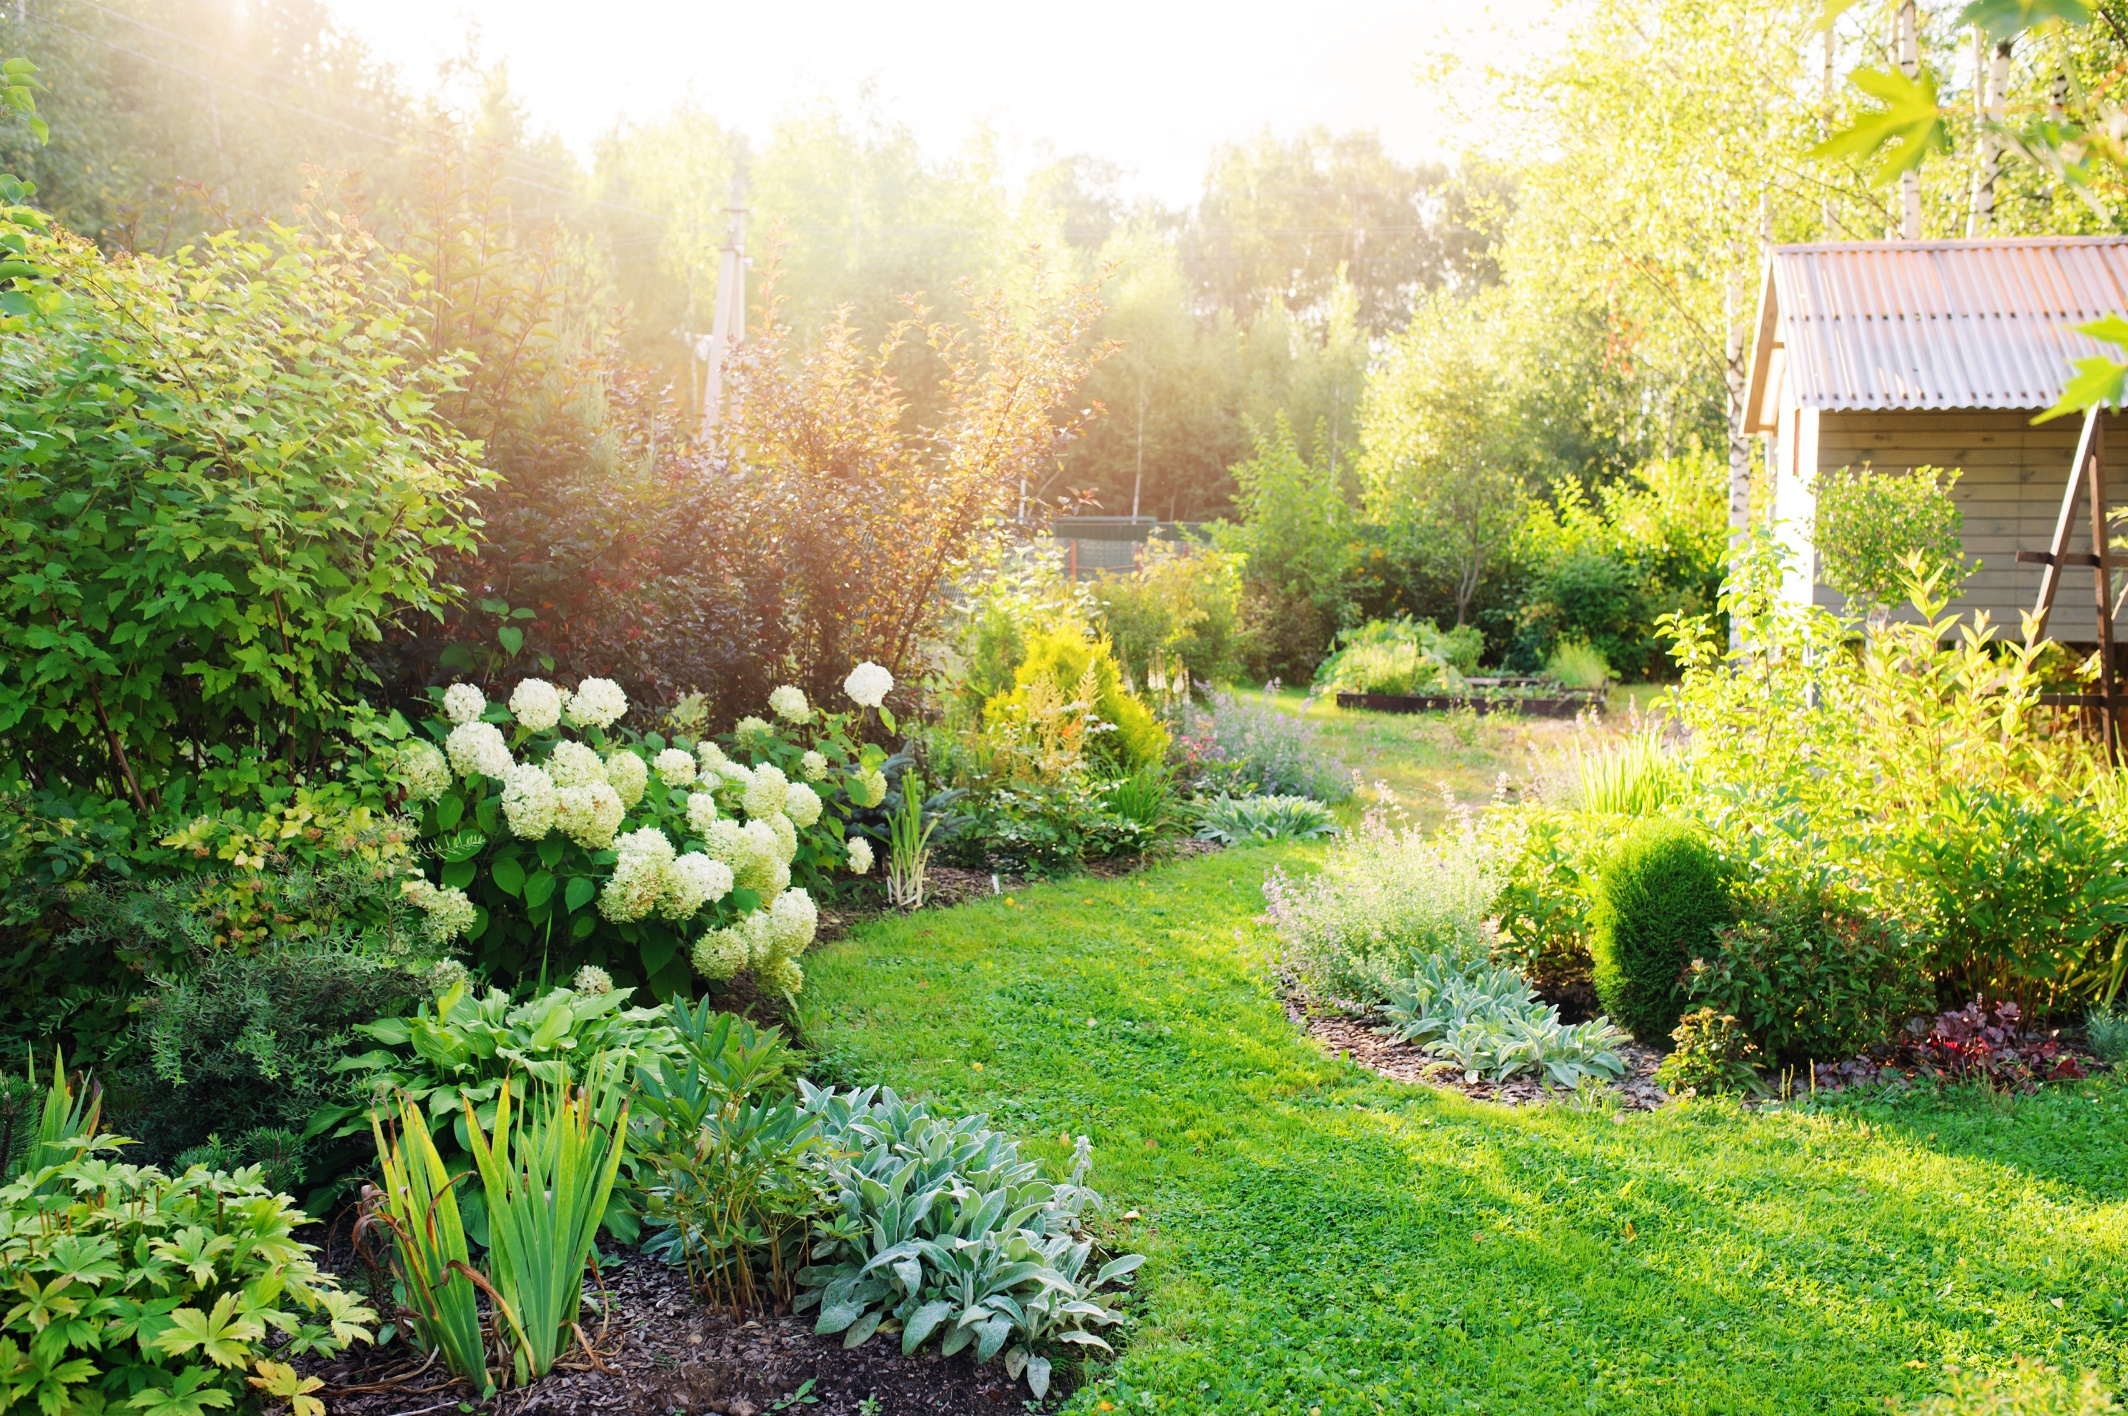 5 Improvements That Can Help Your Garden Thrive 3